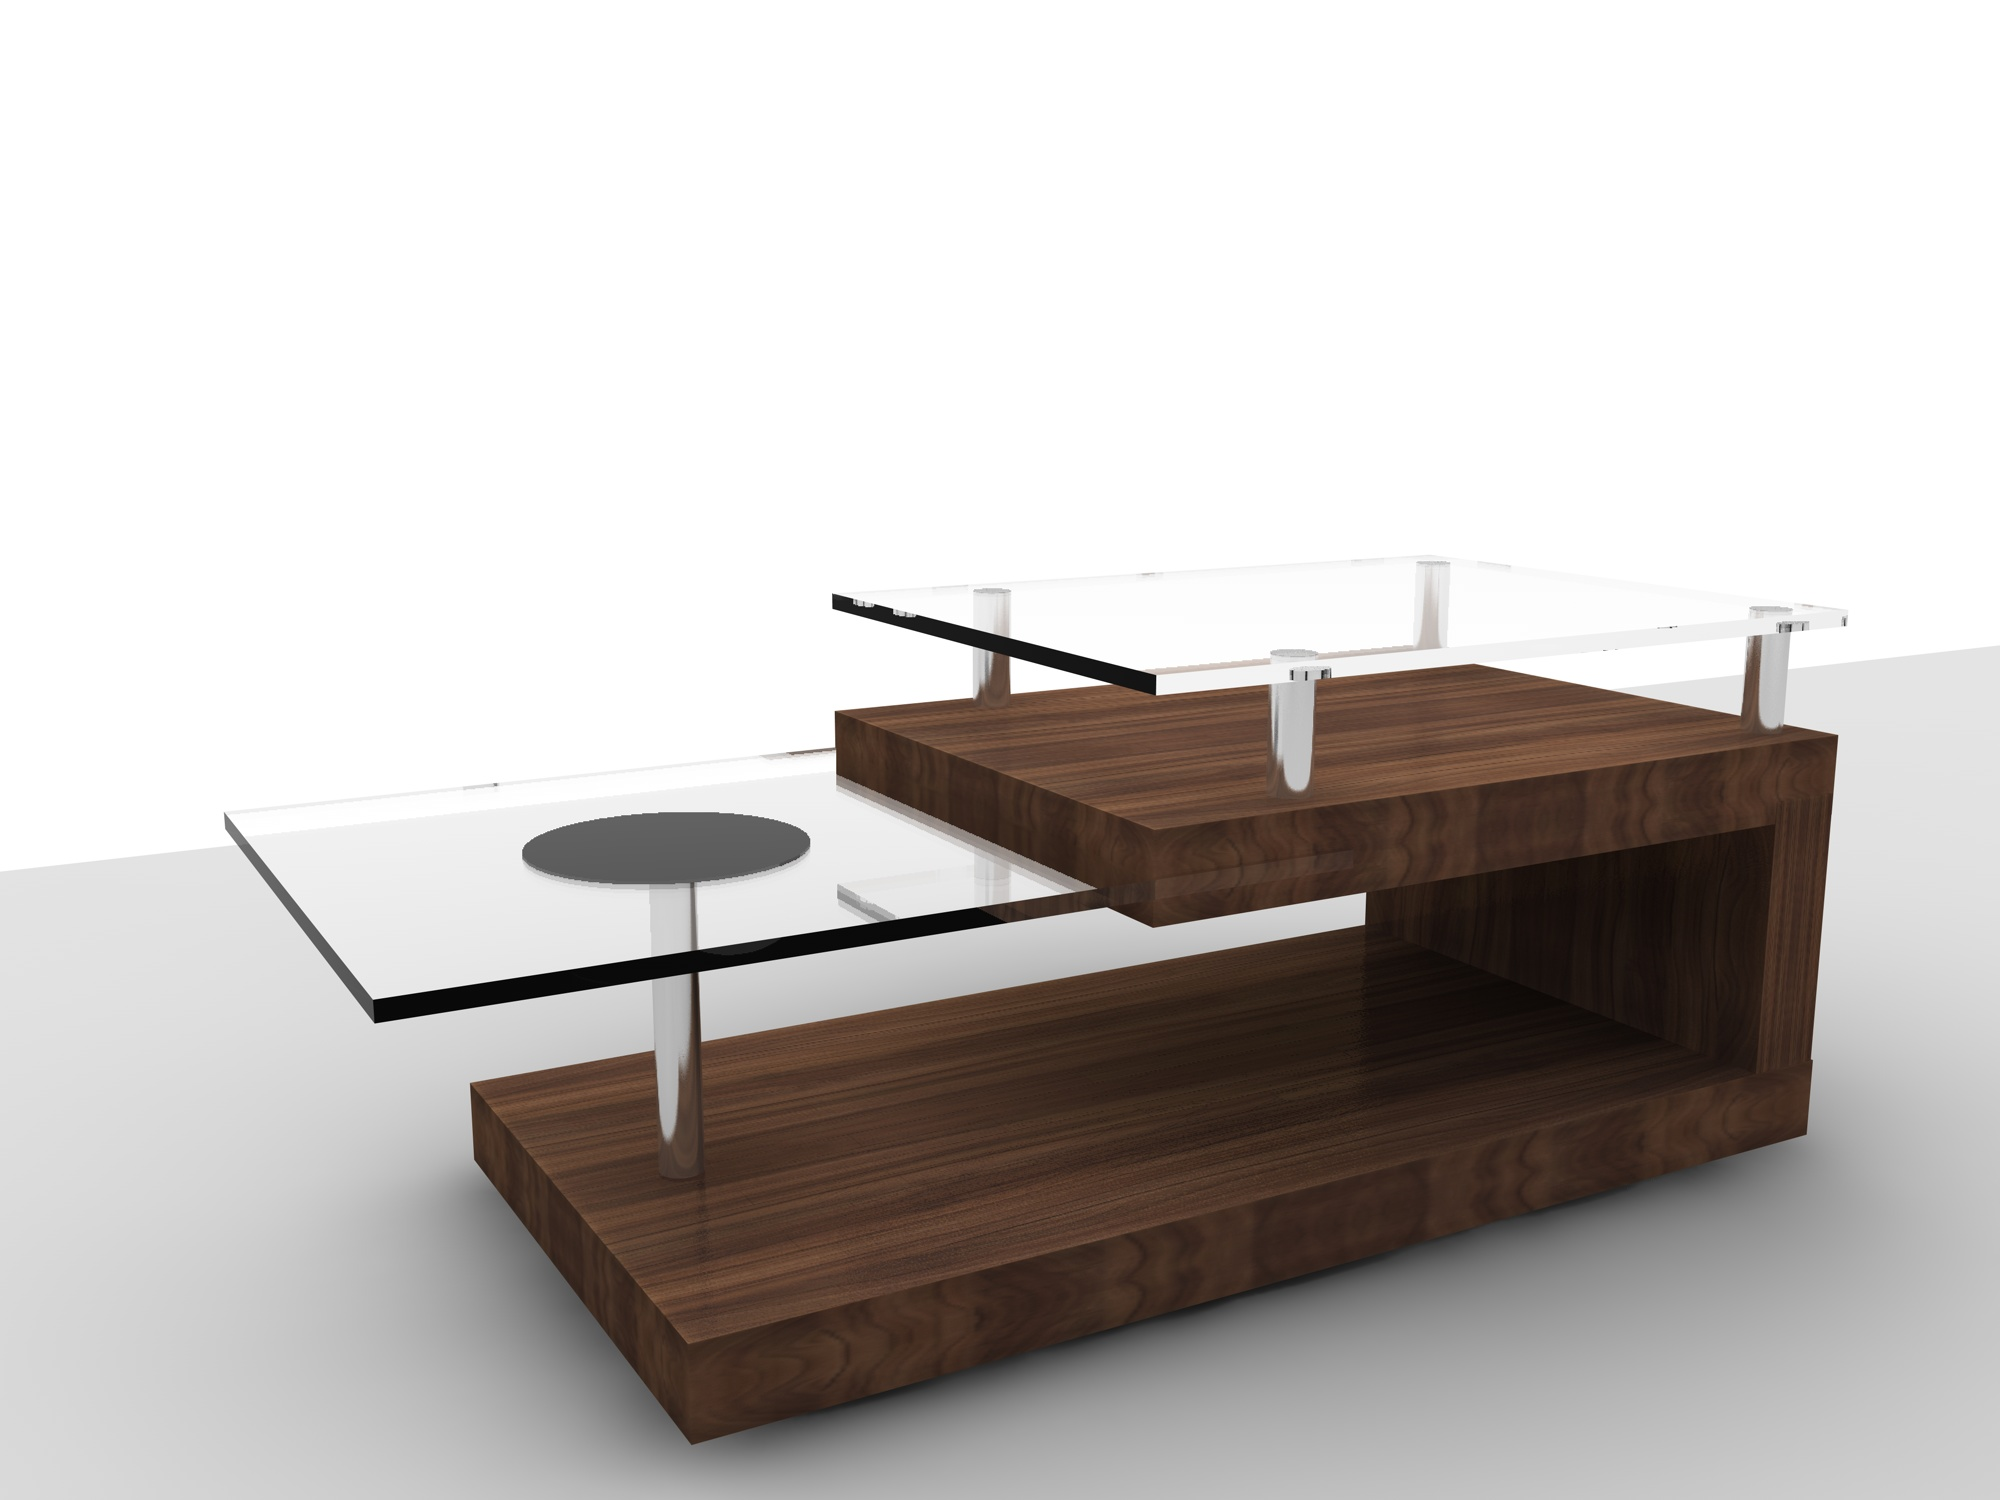 Ottoman Coffee Table With Tray Designs Beautiful Interior Furniture Design Simple Woodworking Projects For Cub Scouts (View 2 of 10)